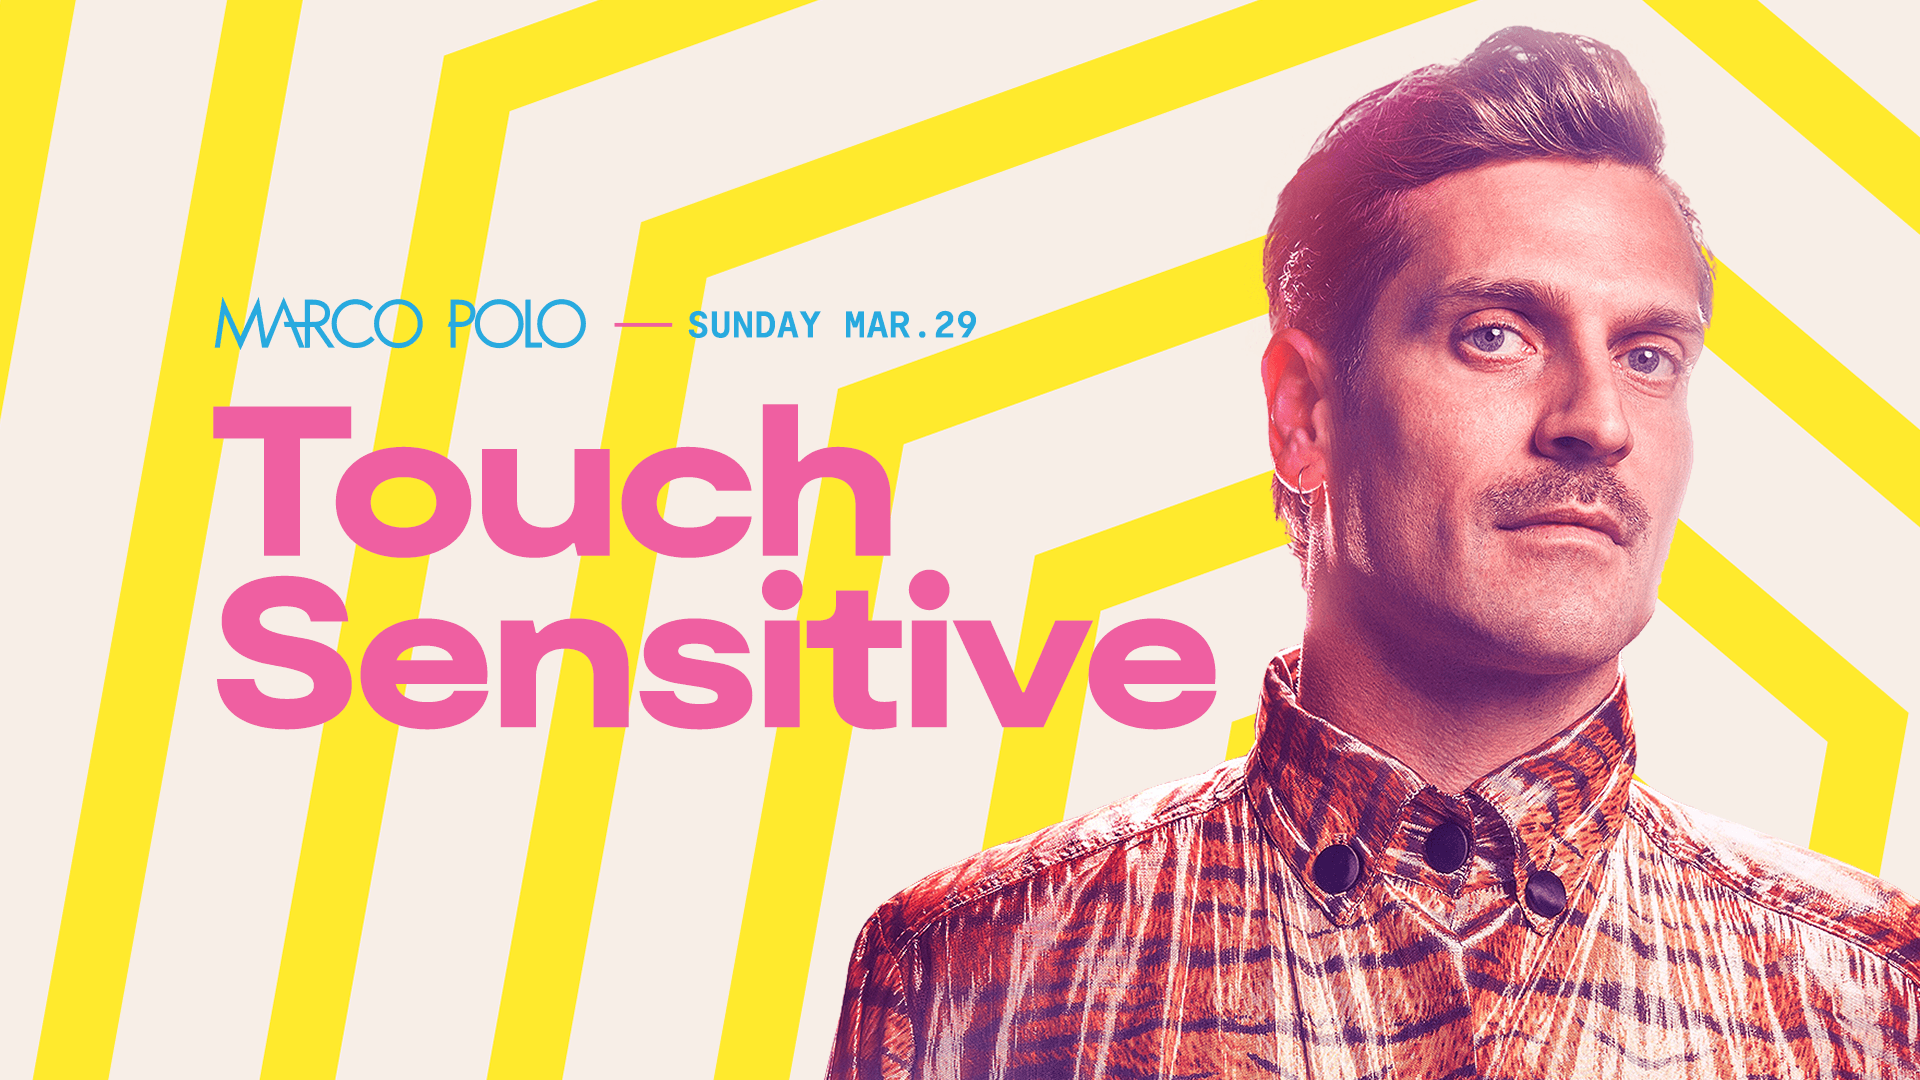 Tickets for CANCELLED: Marco Polo ft. Touch Sensitive in Sydney from Merivale